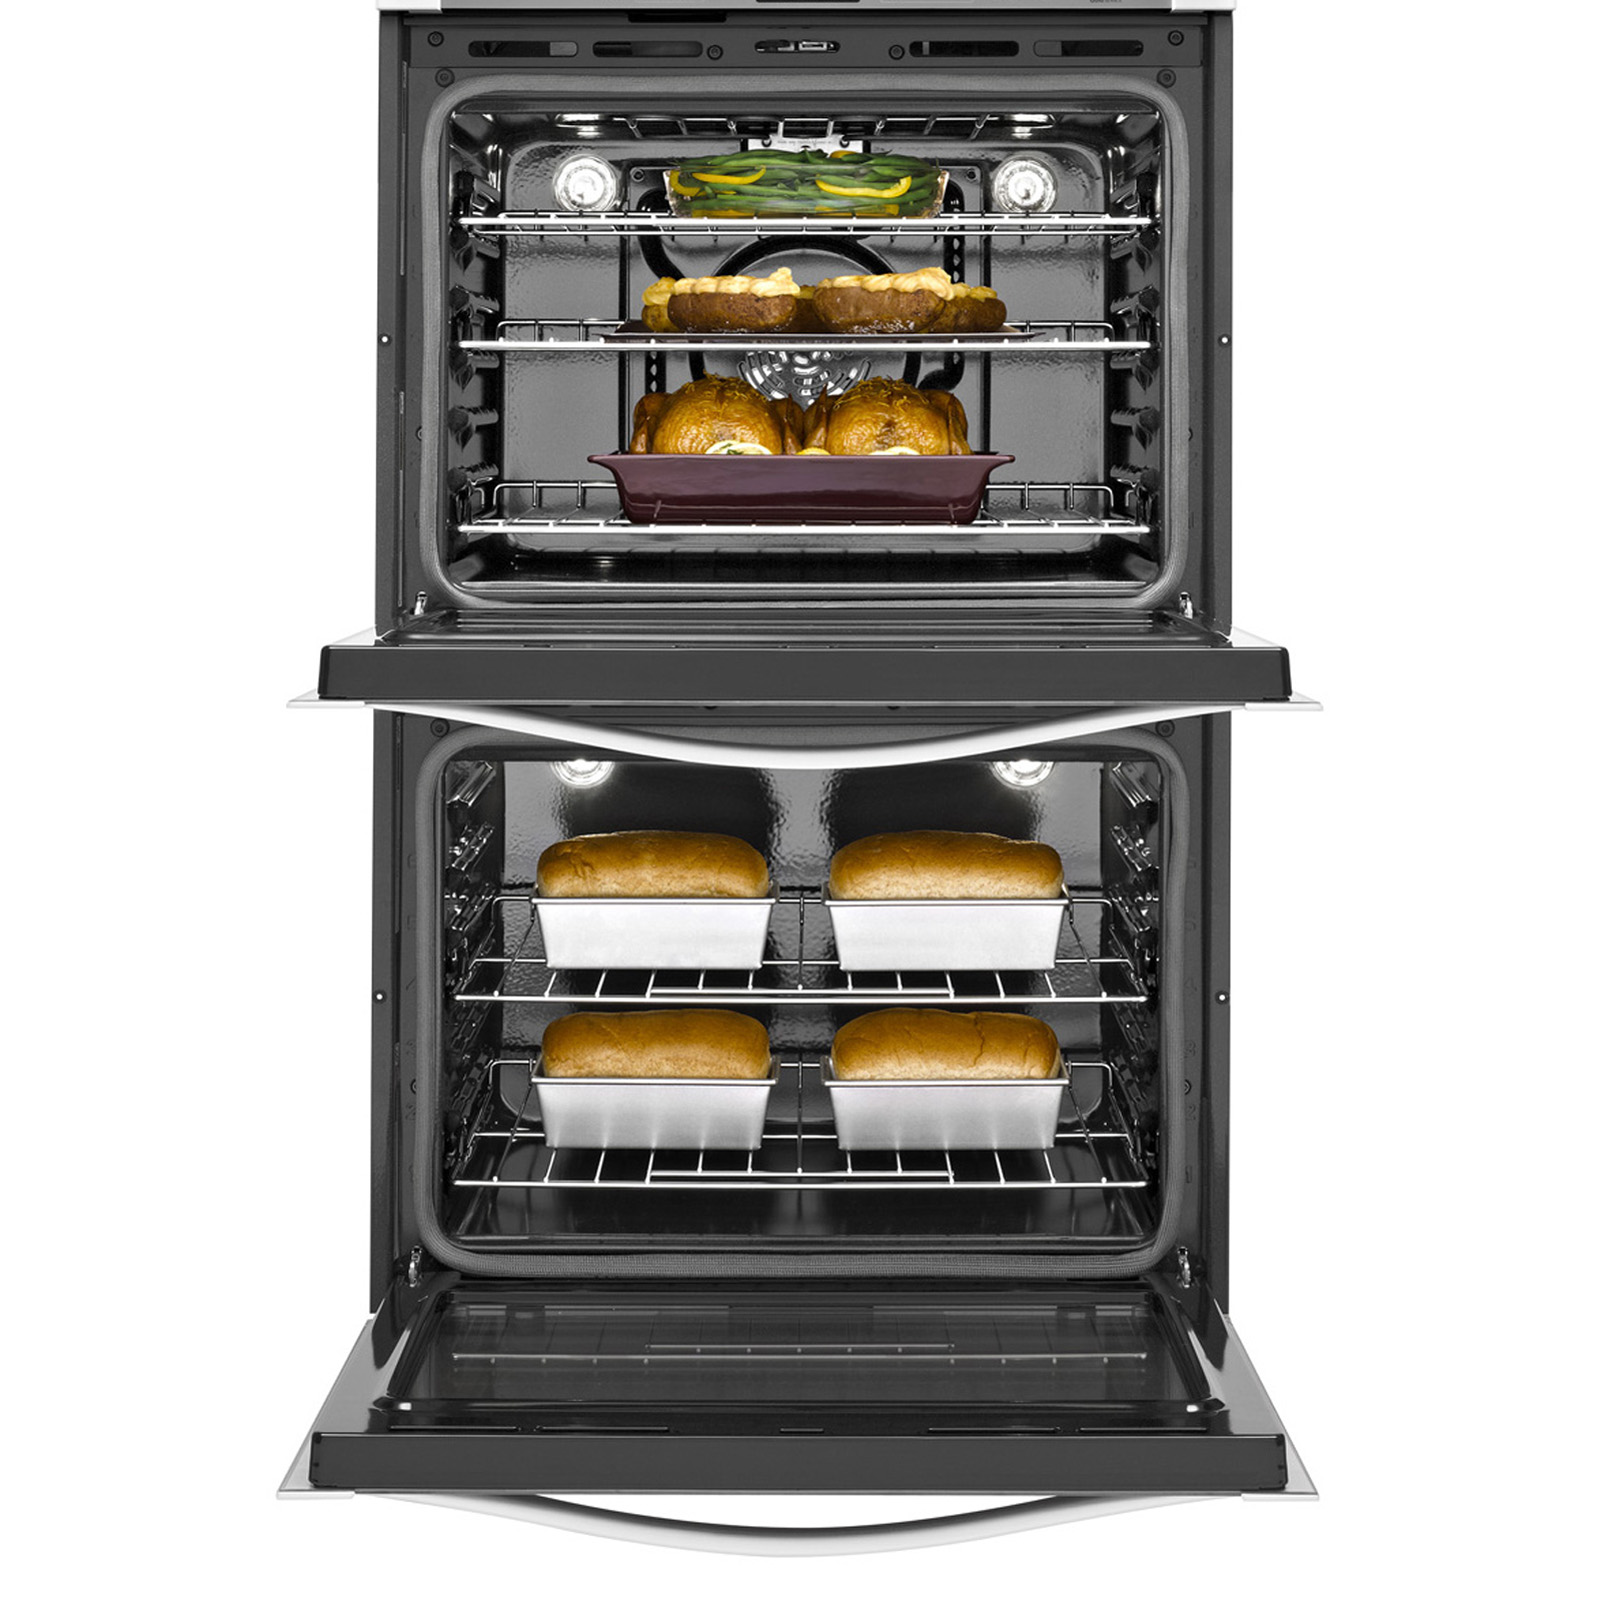 "Whirlpool Gold WOD93EC0AS WOD93EC0AS 30"" Electric Double Wall Oven w/ TimeSavor™ Ultra True Convection - Stainless Steel"